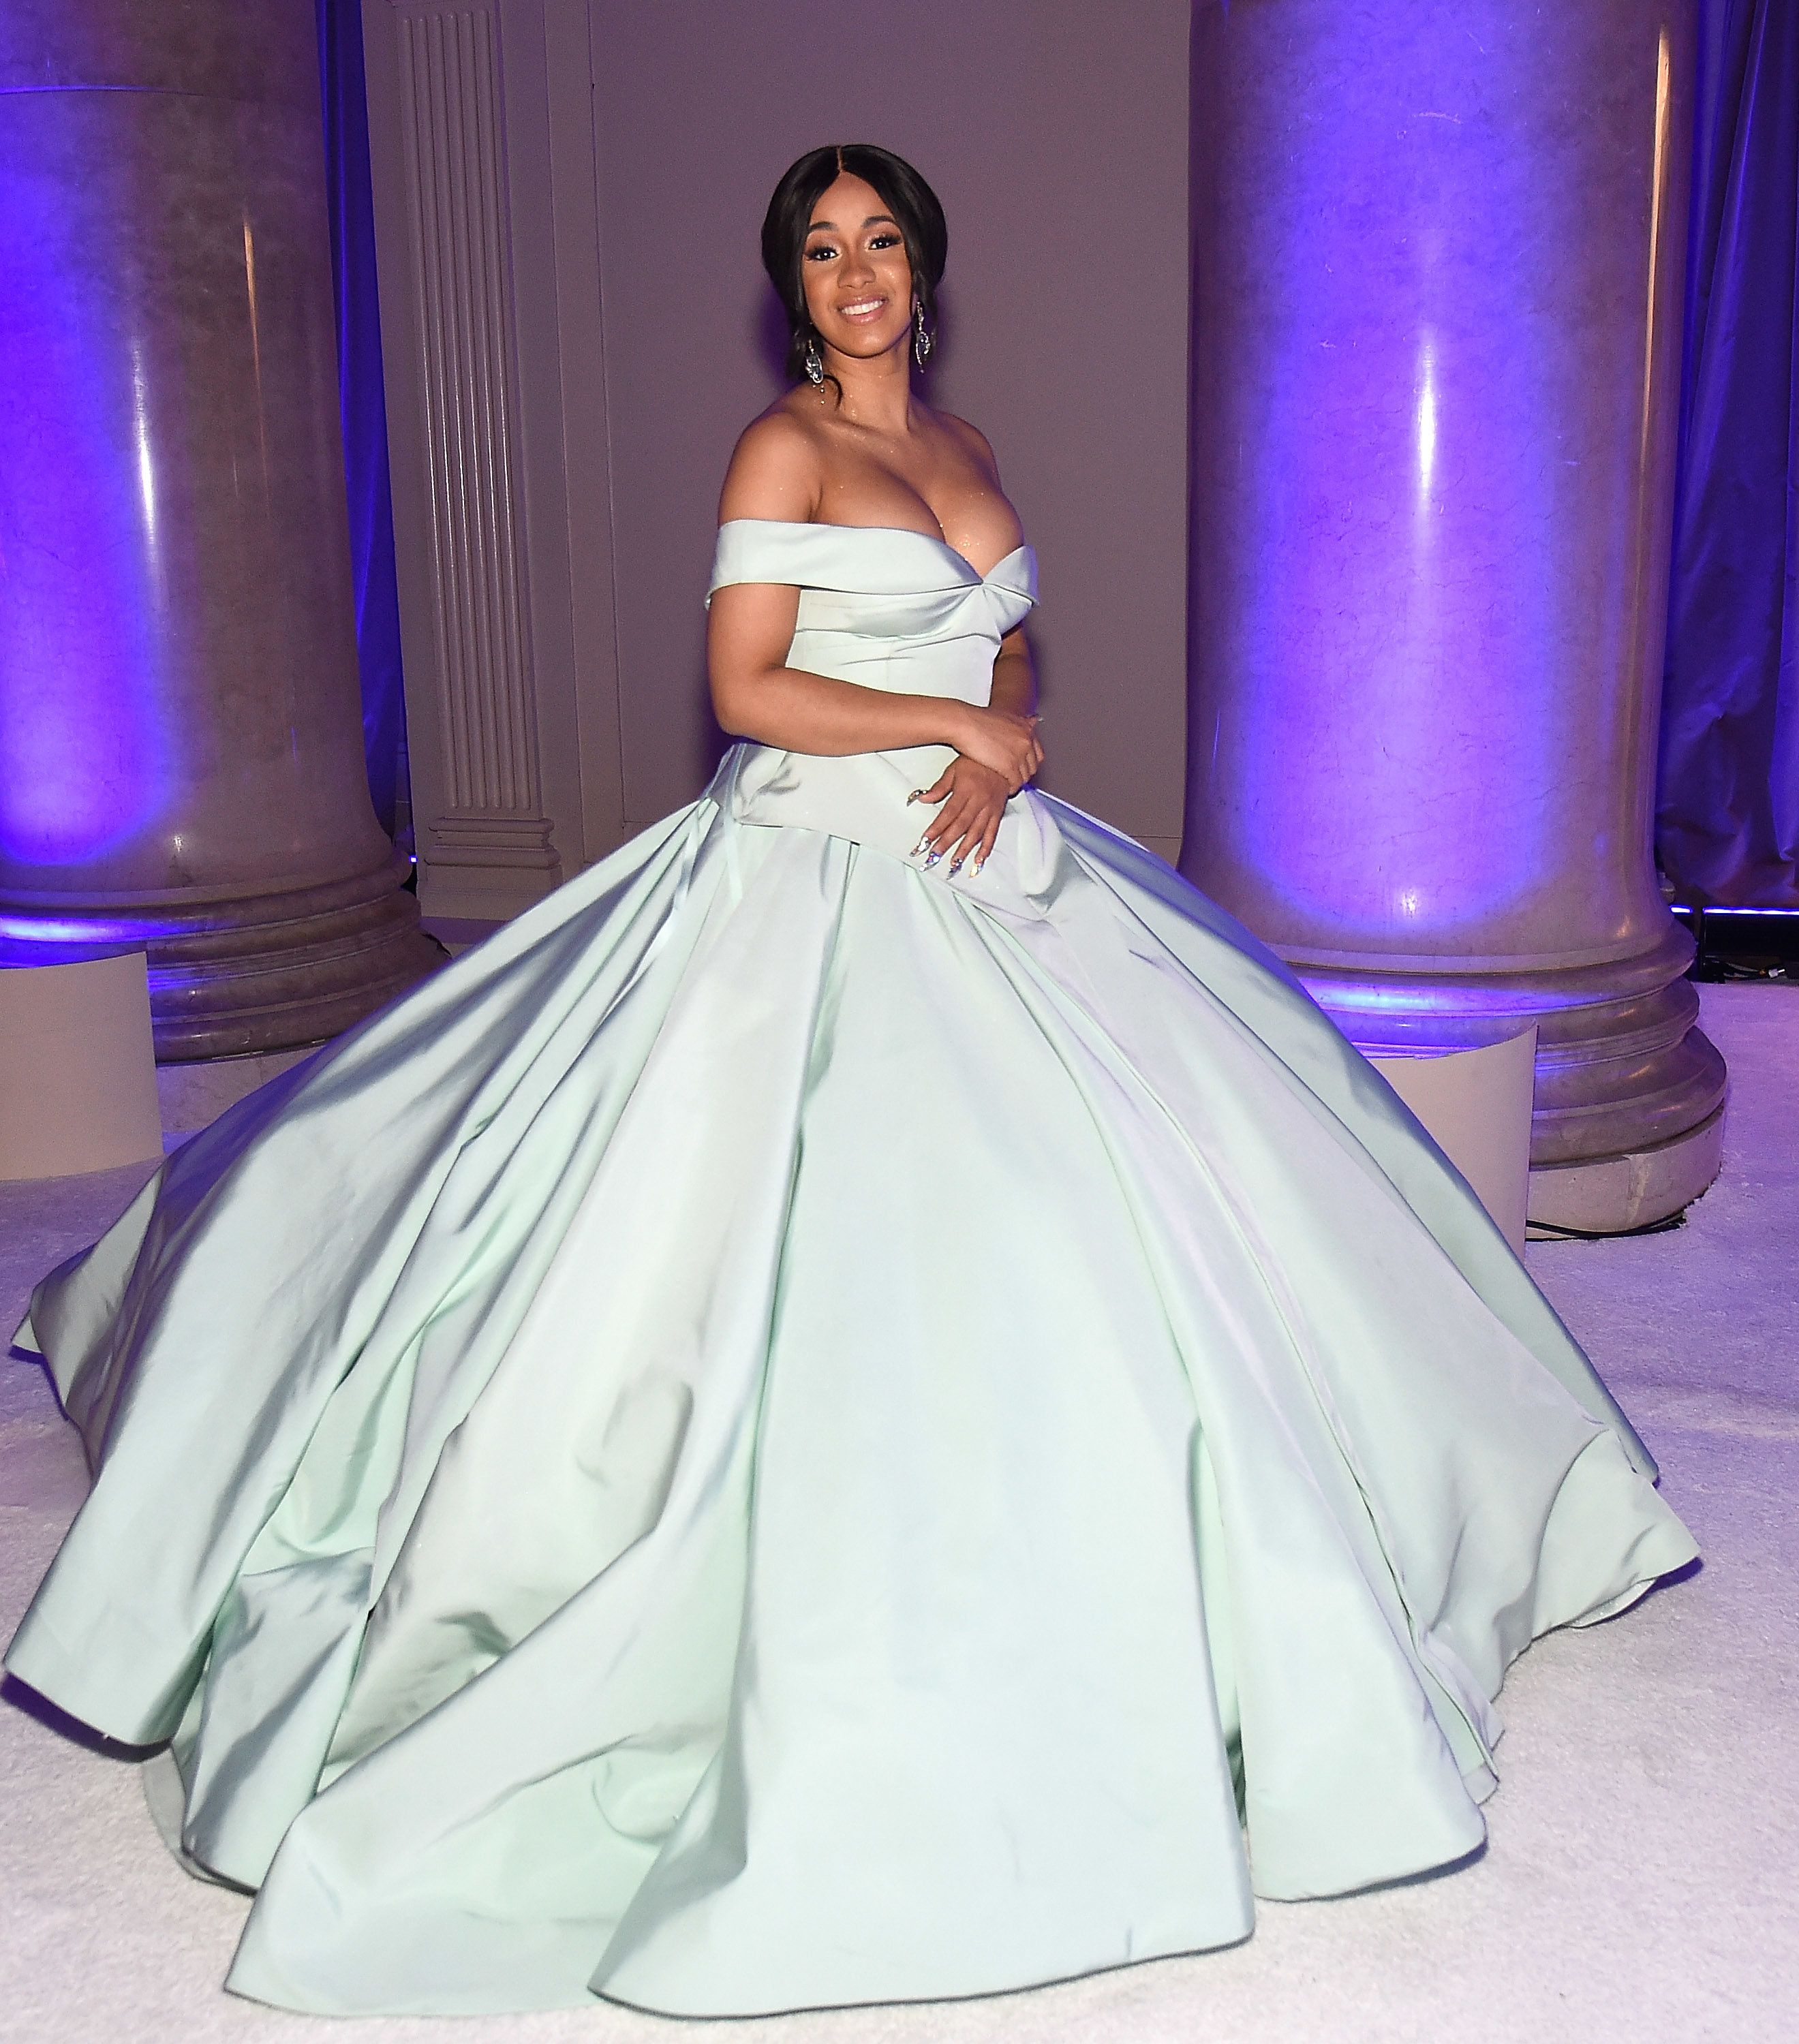 The most fashion worthy moments of the year cardi b pinterest